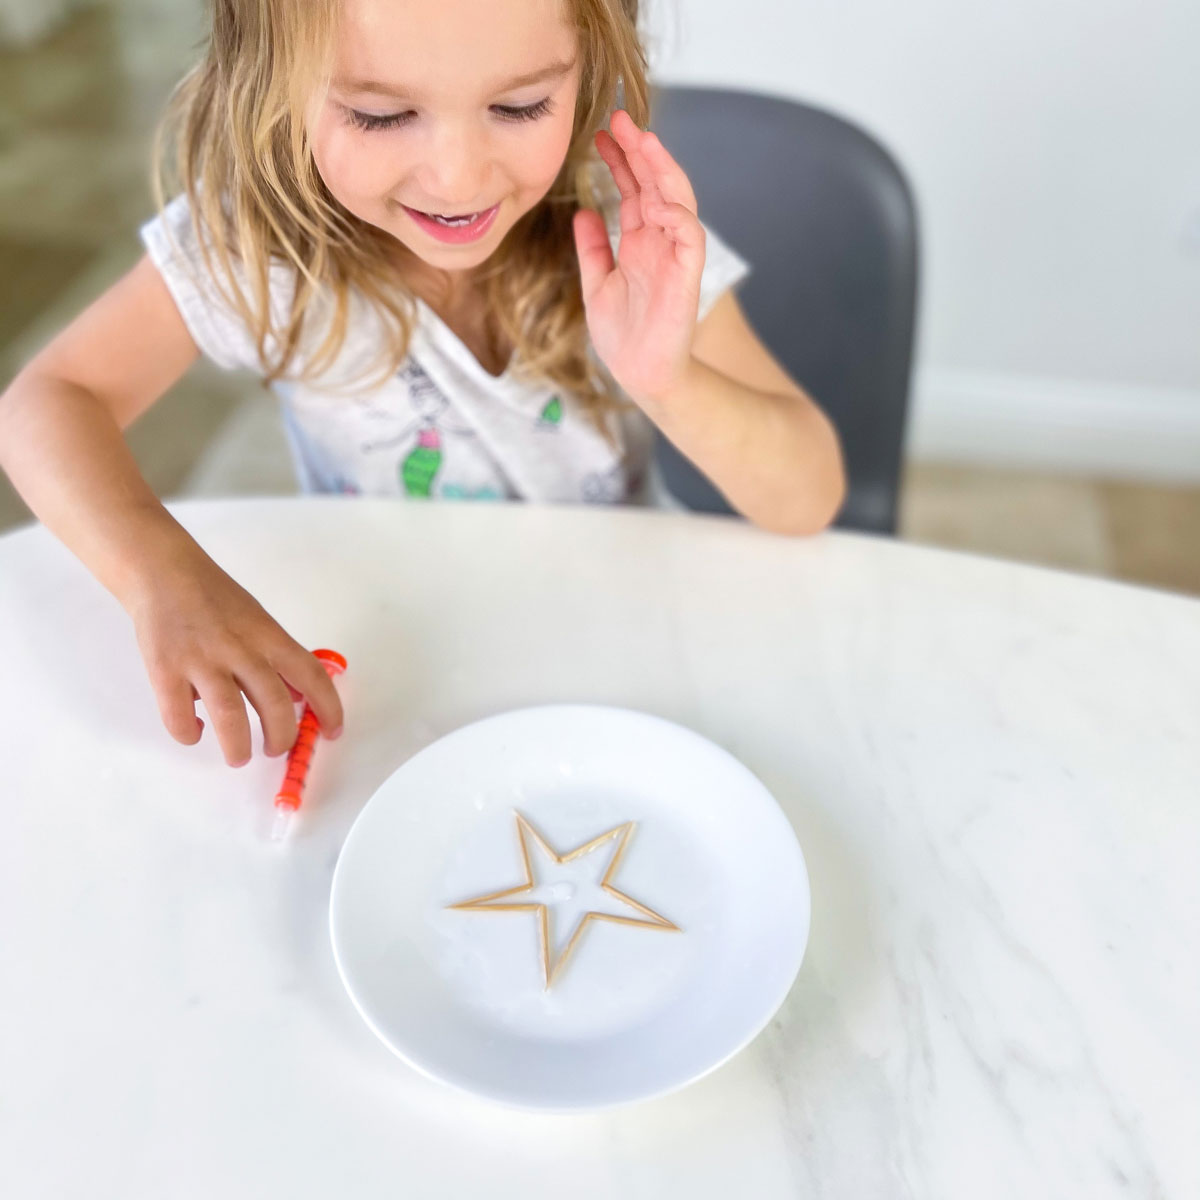 Toothpick Star Experiment – Magic with Water!